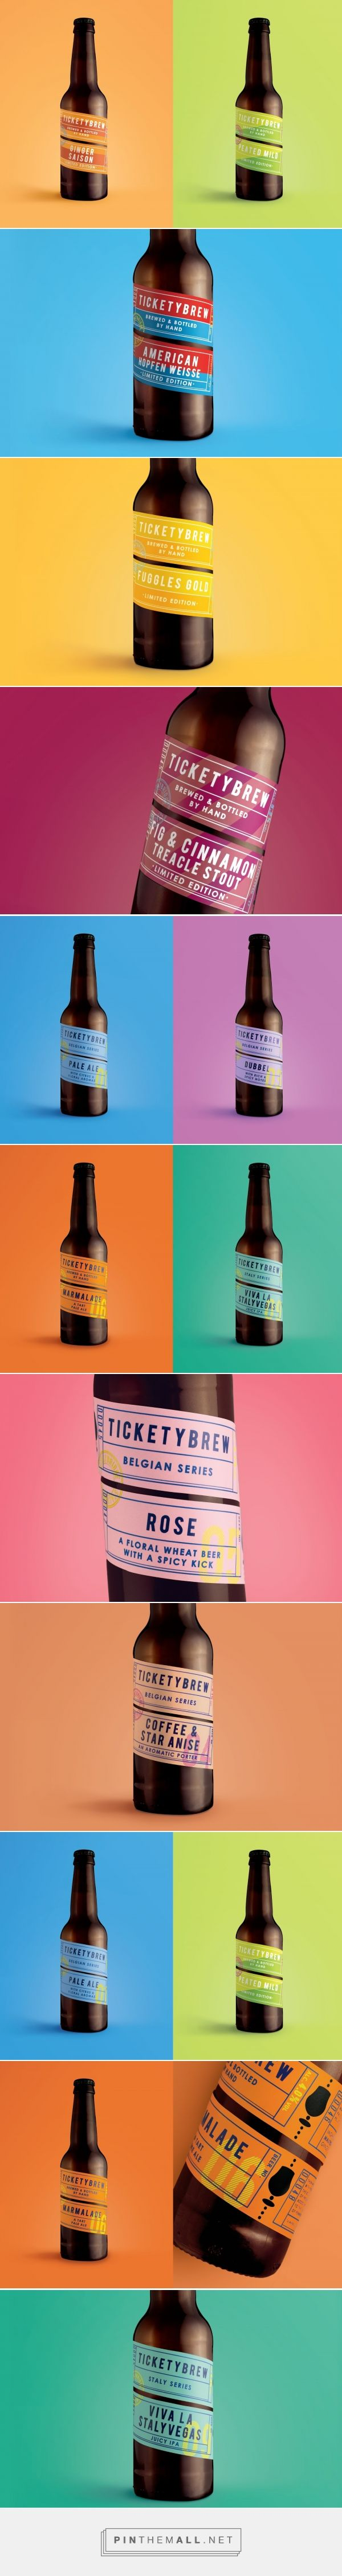 TicketyBrew packaging design by Carter Wong - https://www.packagingoftheworld.com/2018/04/ticketybrew-refreshed.html